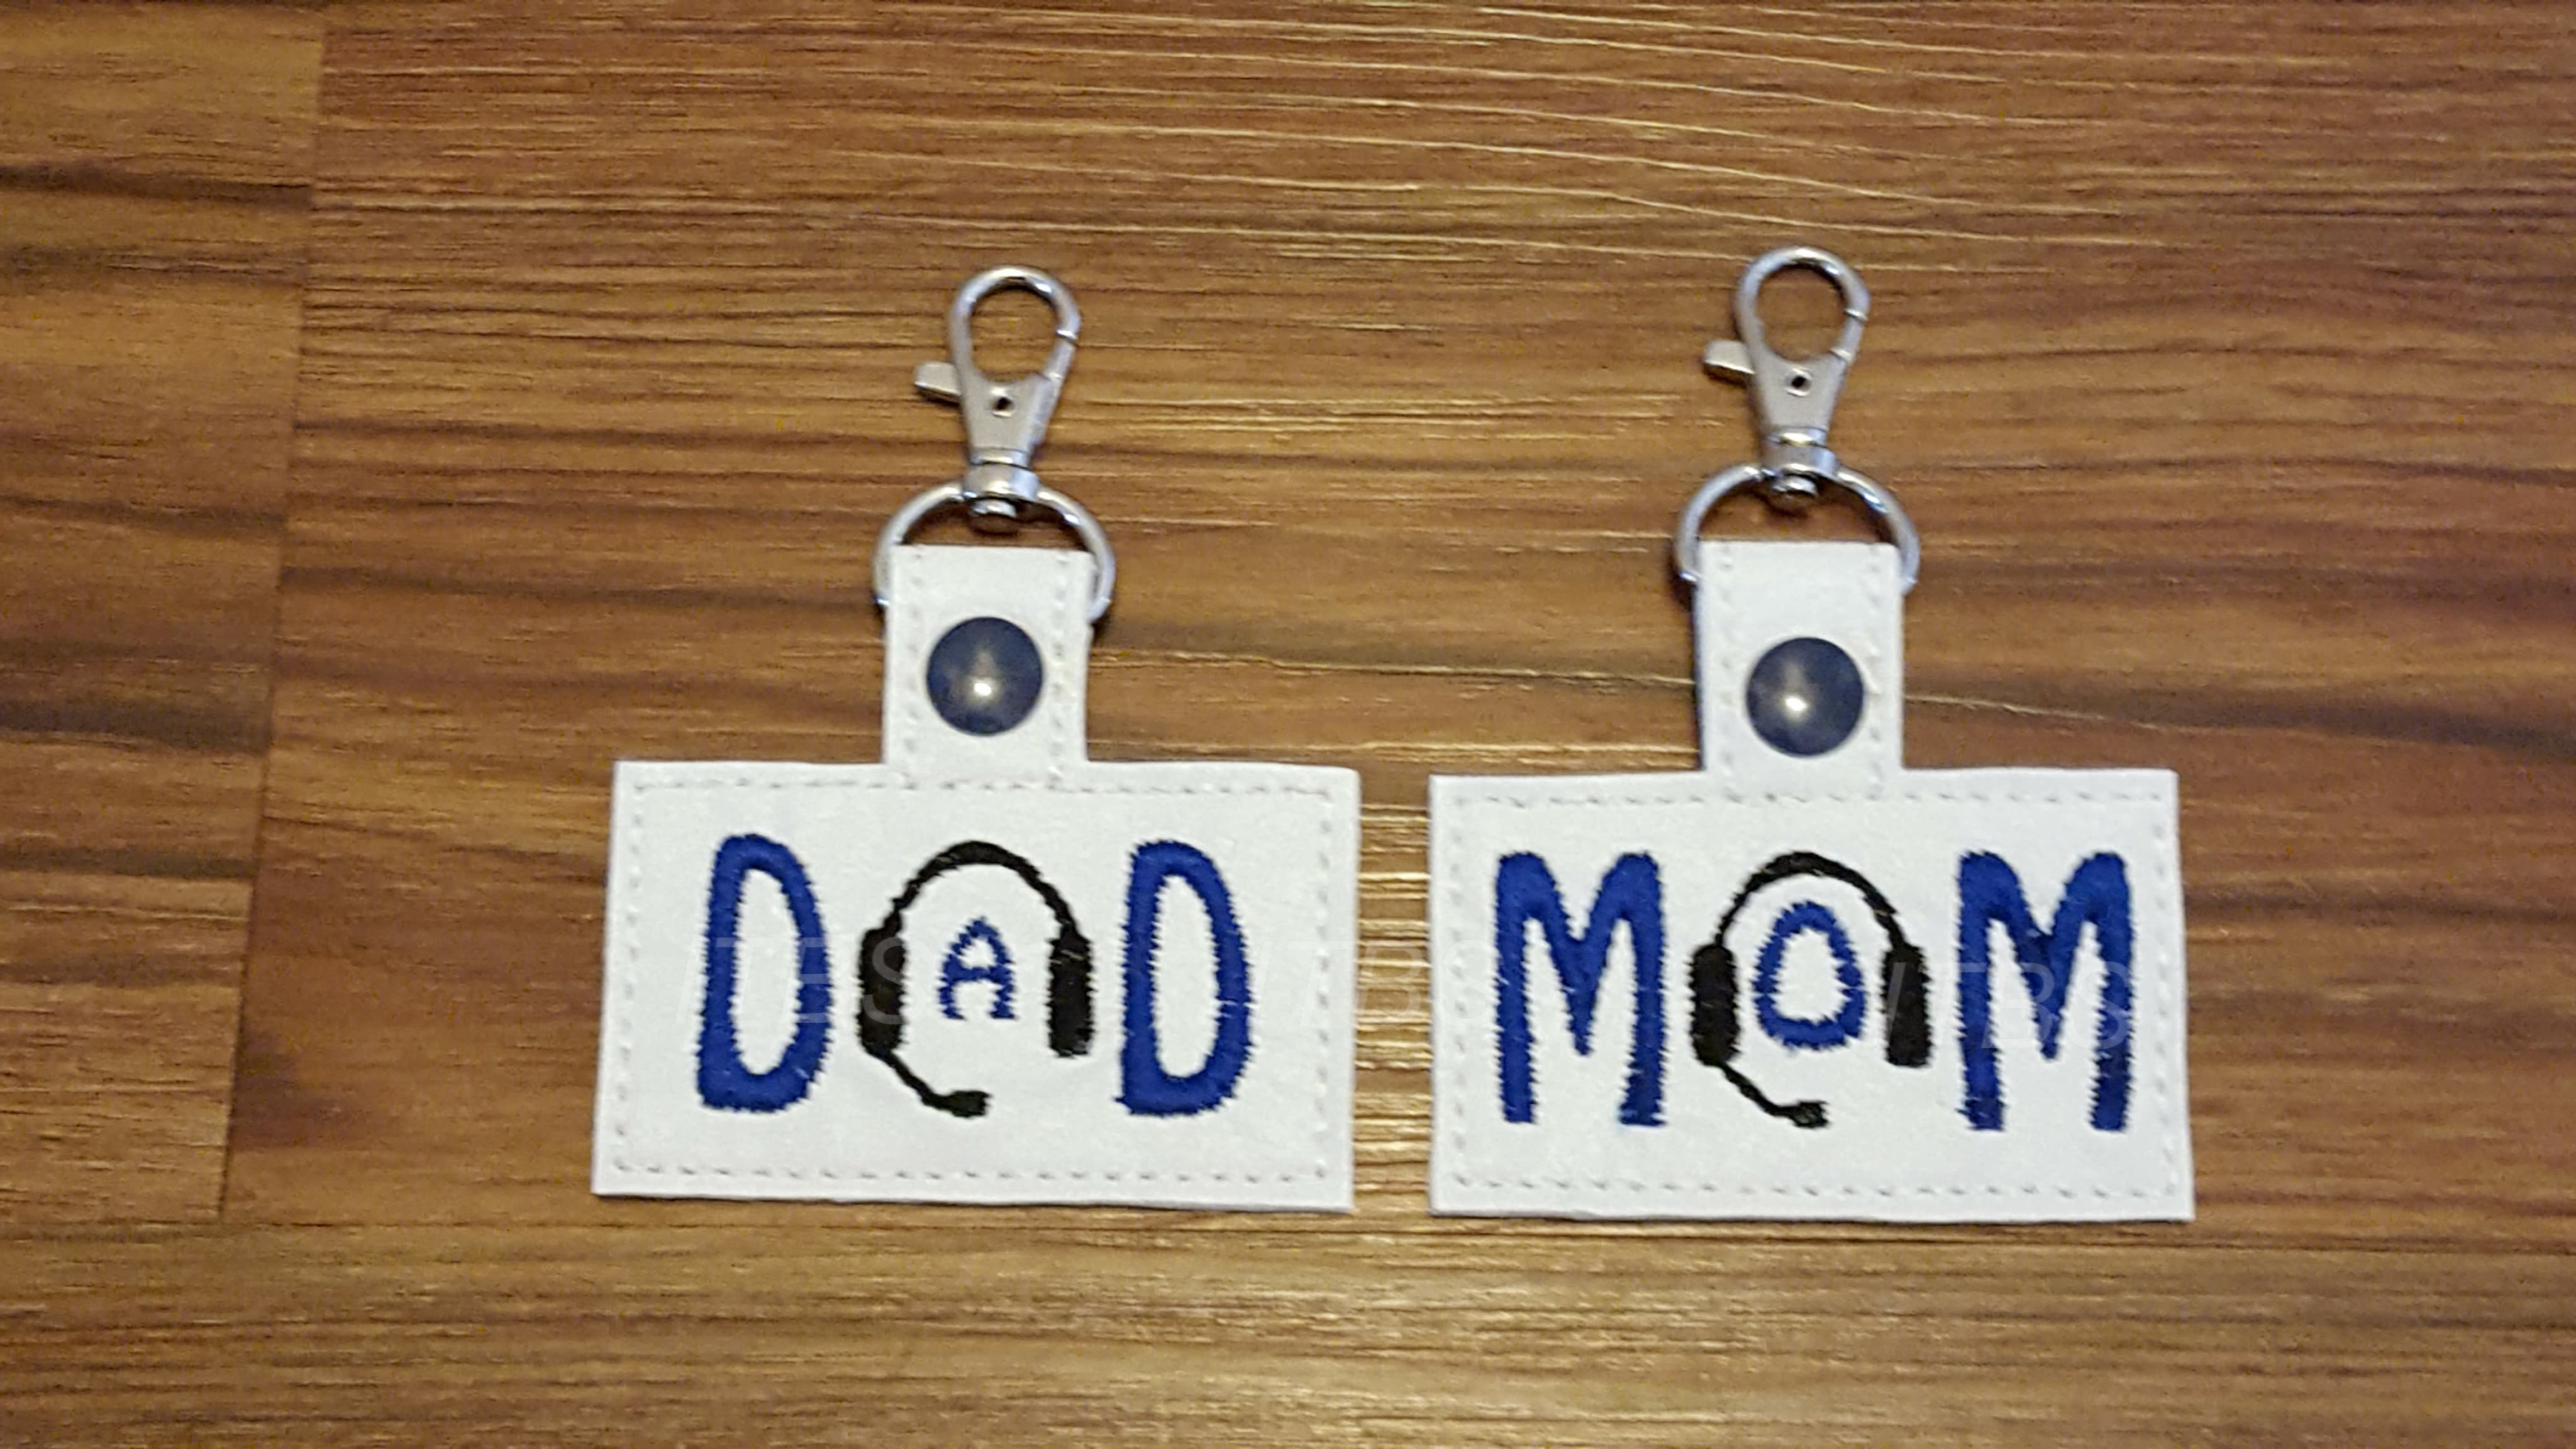 Dispatcher mom and dad key fobs